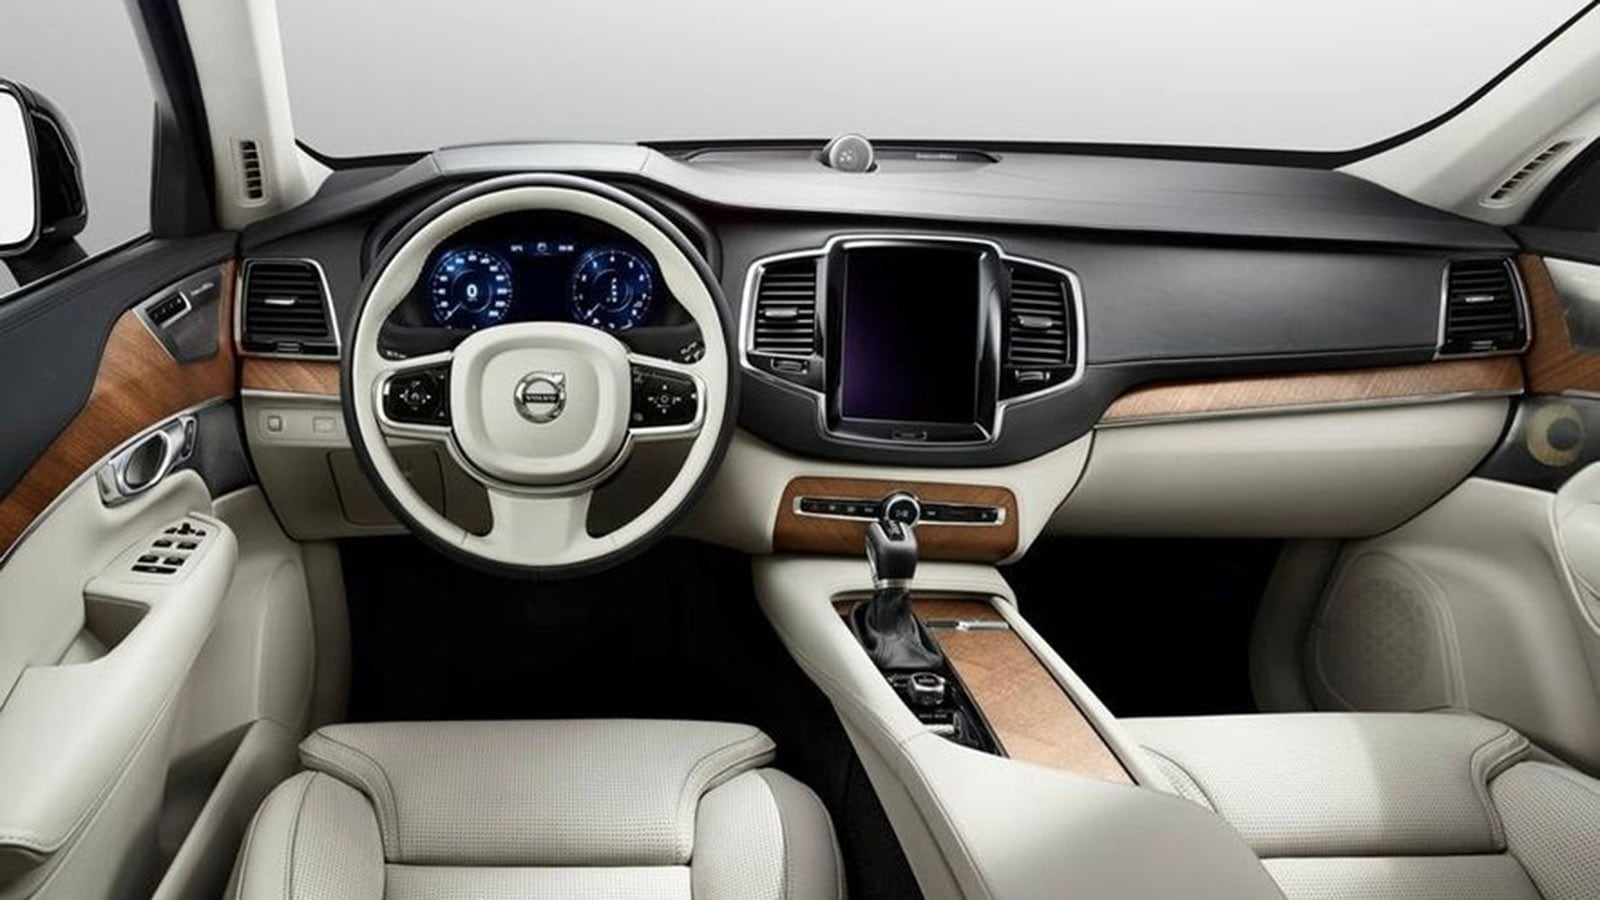 Mesmerizing Volvo Xc90 Interior Color Code Images Simple